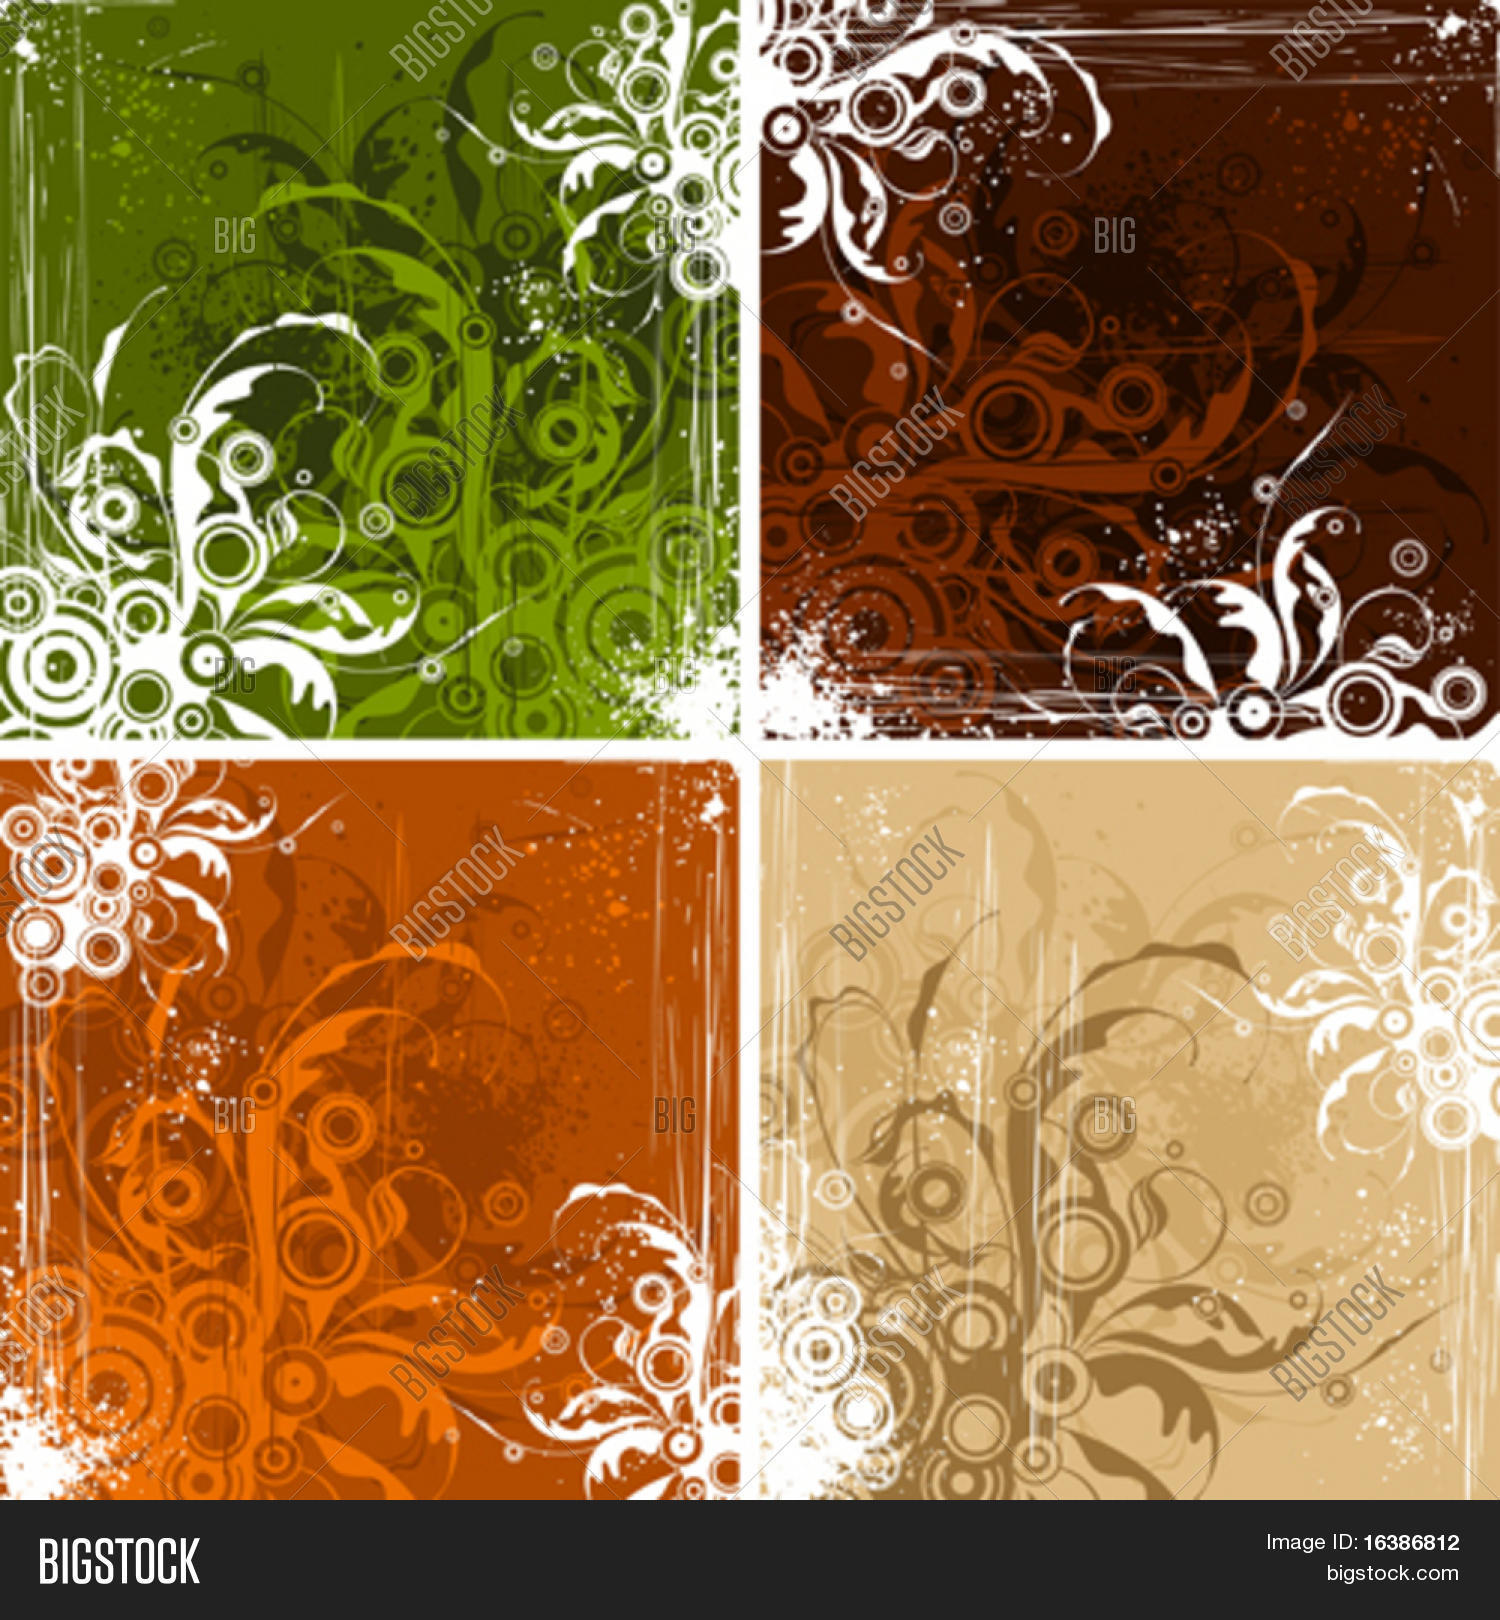 Vintage Floral Vector Photo Free Trial Bigstock